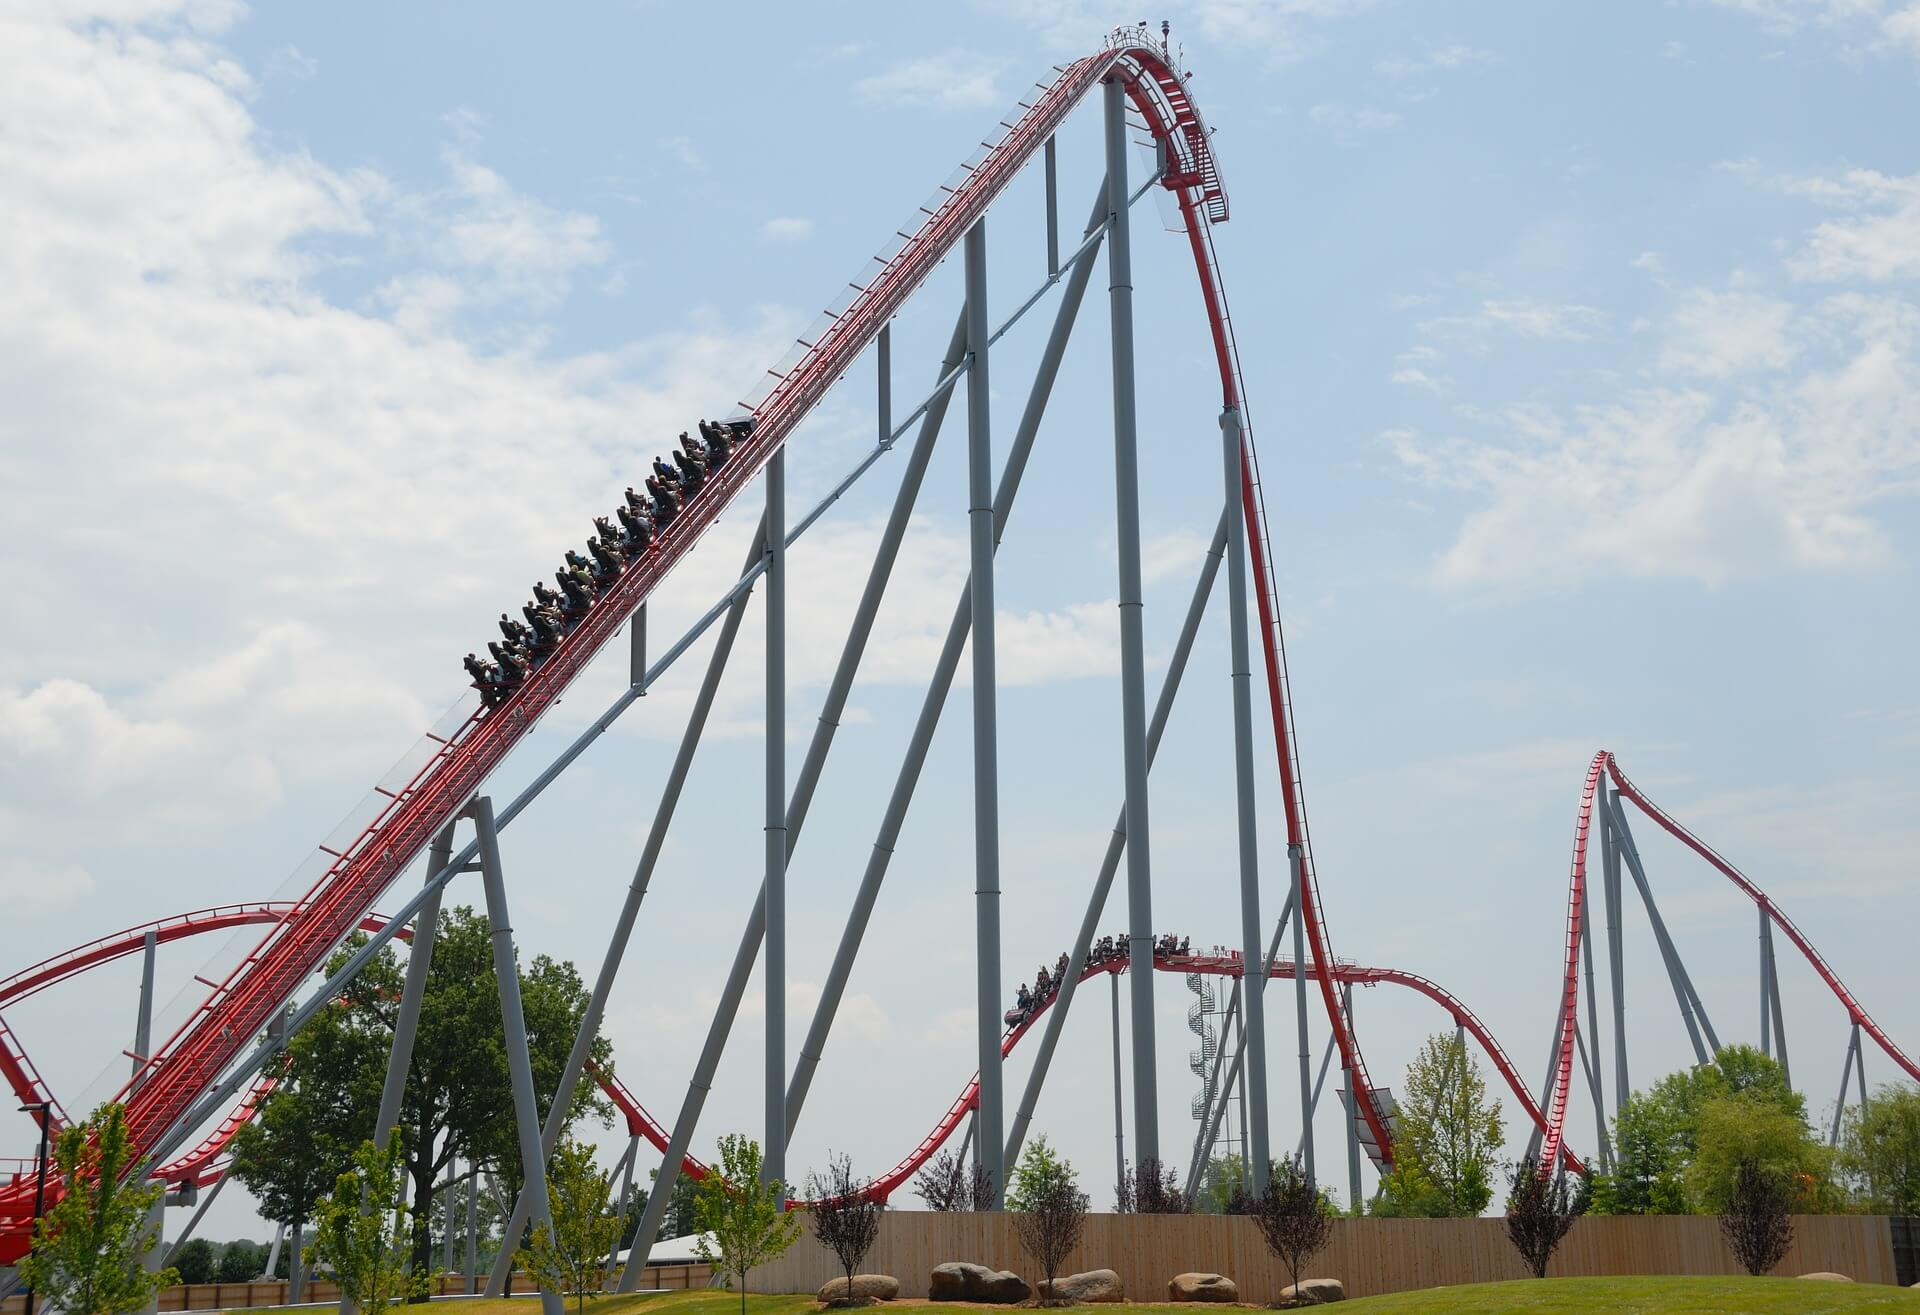 riding the stock market roller coaster